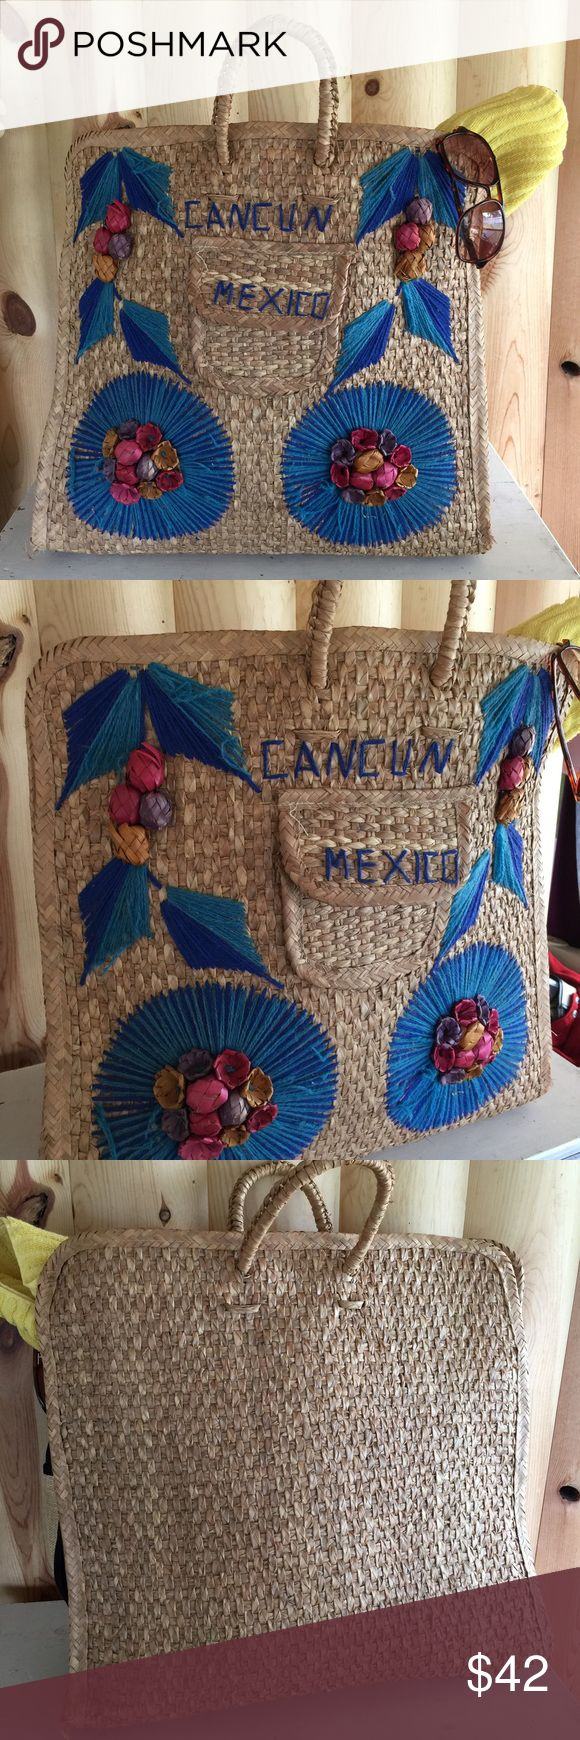 "🎉HP! Vtg MEXICO woven straw beach bag/tote bag🌴 🎉Host pick 7.8 / Best in Swim Party ⛱👙! Festival-ready 1970s tourist Cancun Mexico souvenir large tote bag. Use for the beach, pool, or anywhere you want to make a statement! Normal wear & gentle fraying from usage- adds to the boho/festival look! See bottom corner photo, both sides look similar. 23"" by 20"" , (including handles) will arrive in a large box Vintage Bags Totes"